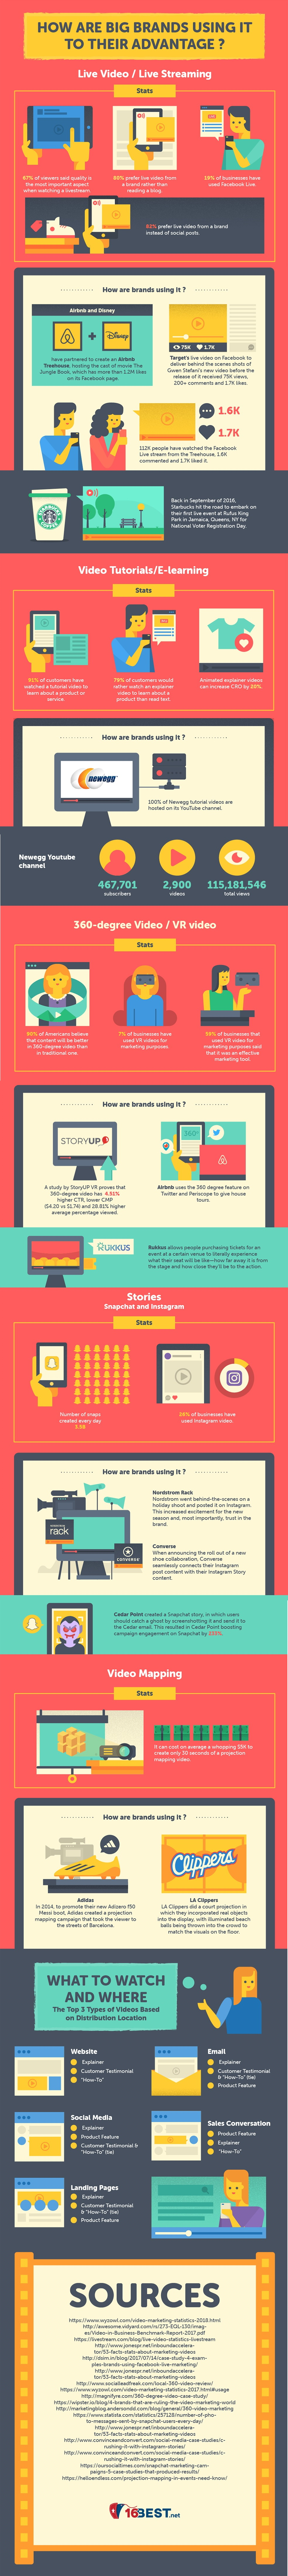 Brands Using Video Marketing Infographic